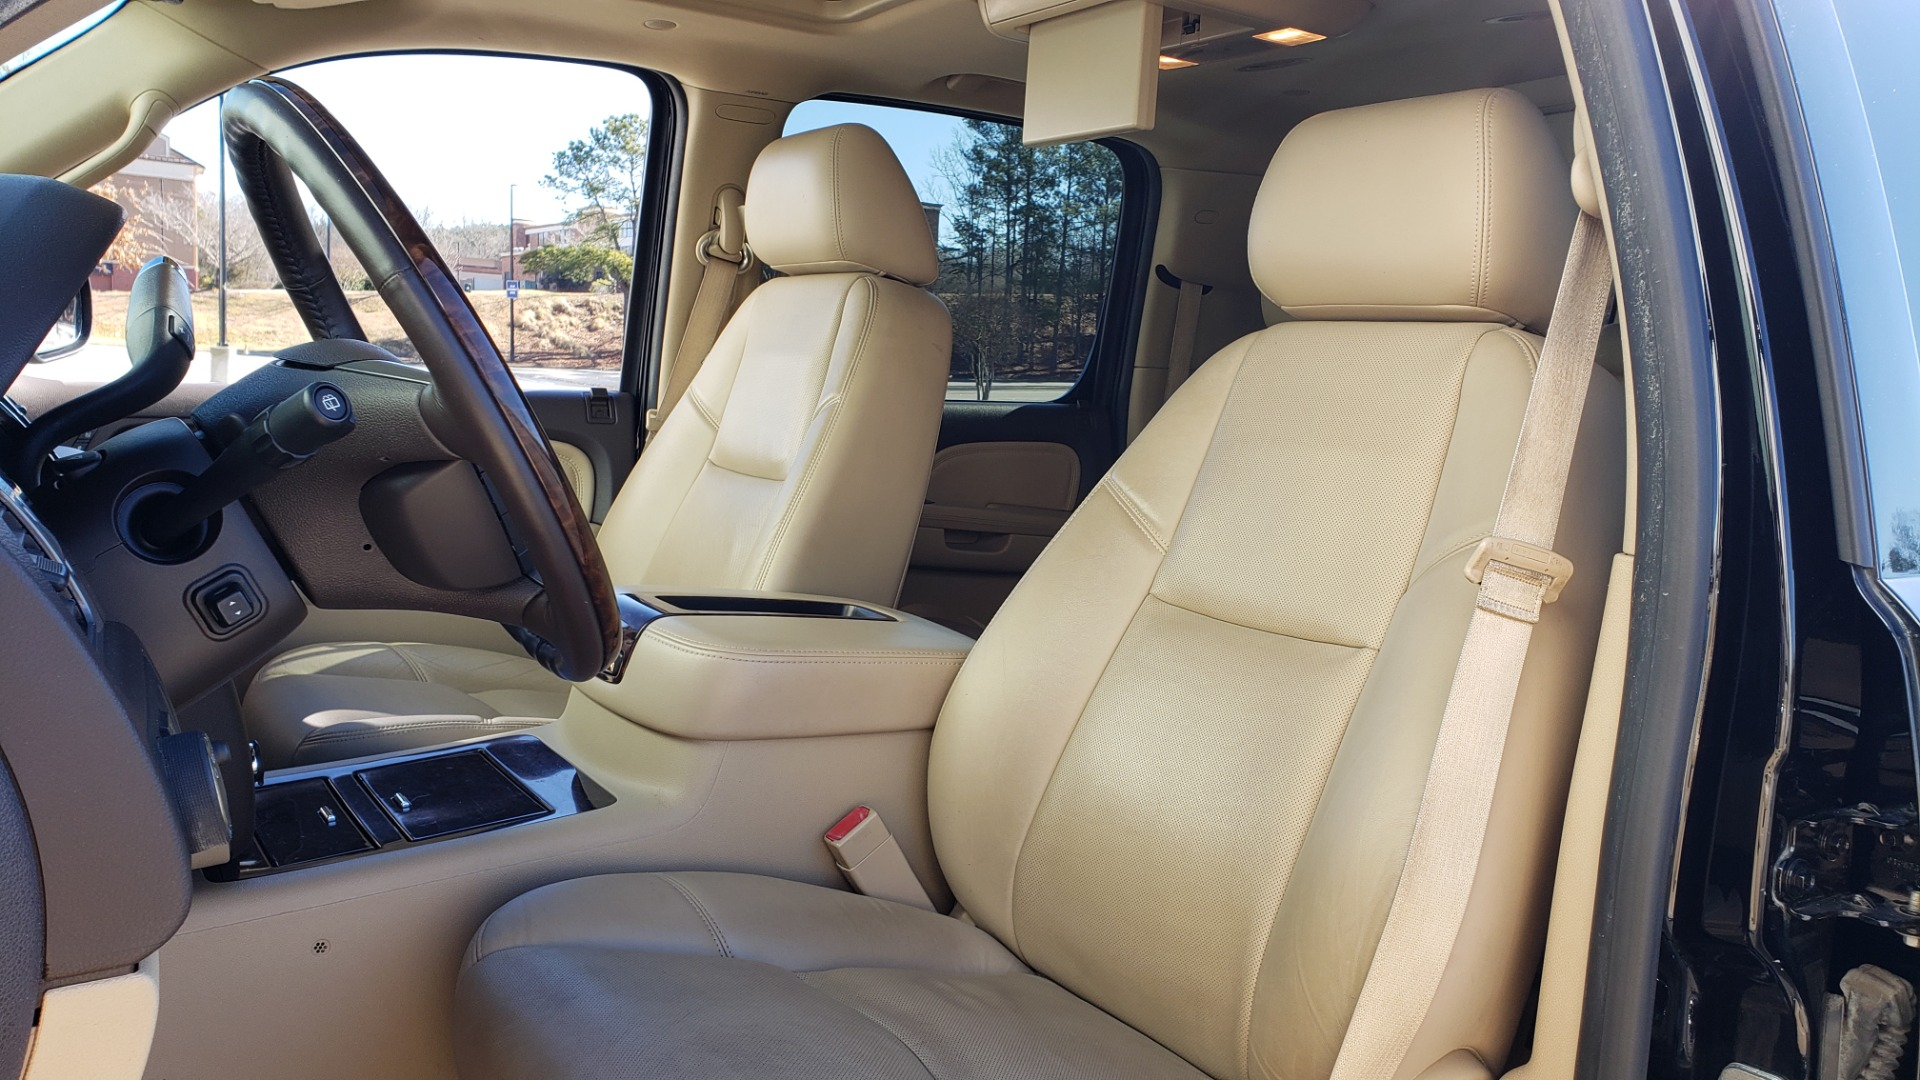 Used 2013 GMC YUKON XL DENALI / AWD / NAV / SUNROOF / 3-ROW / ENTERTAINMENT for sale Sold at Formula Imports in Charlotte NC 28227 35